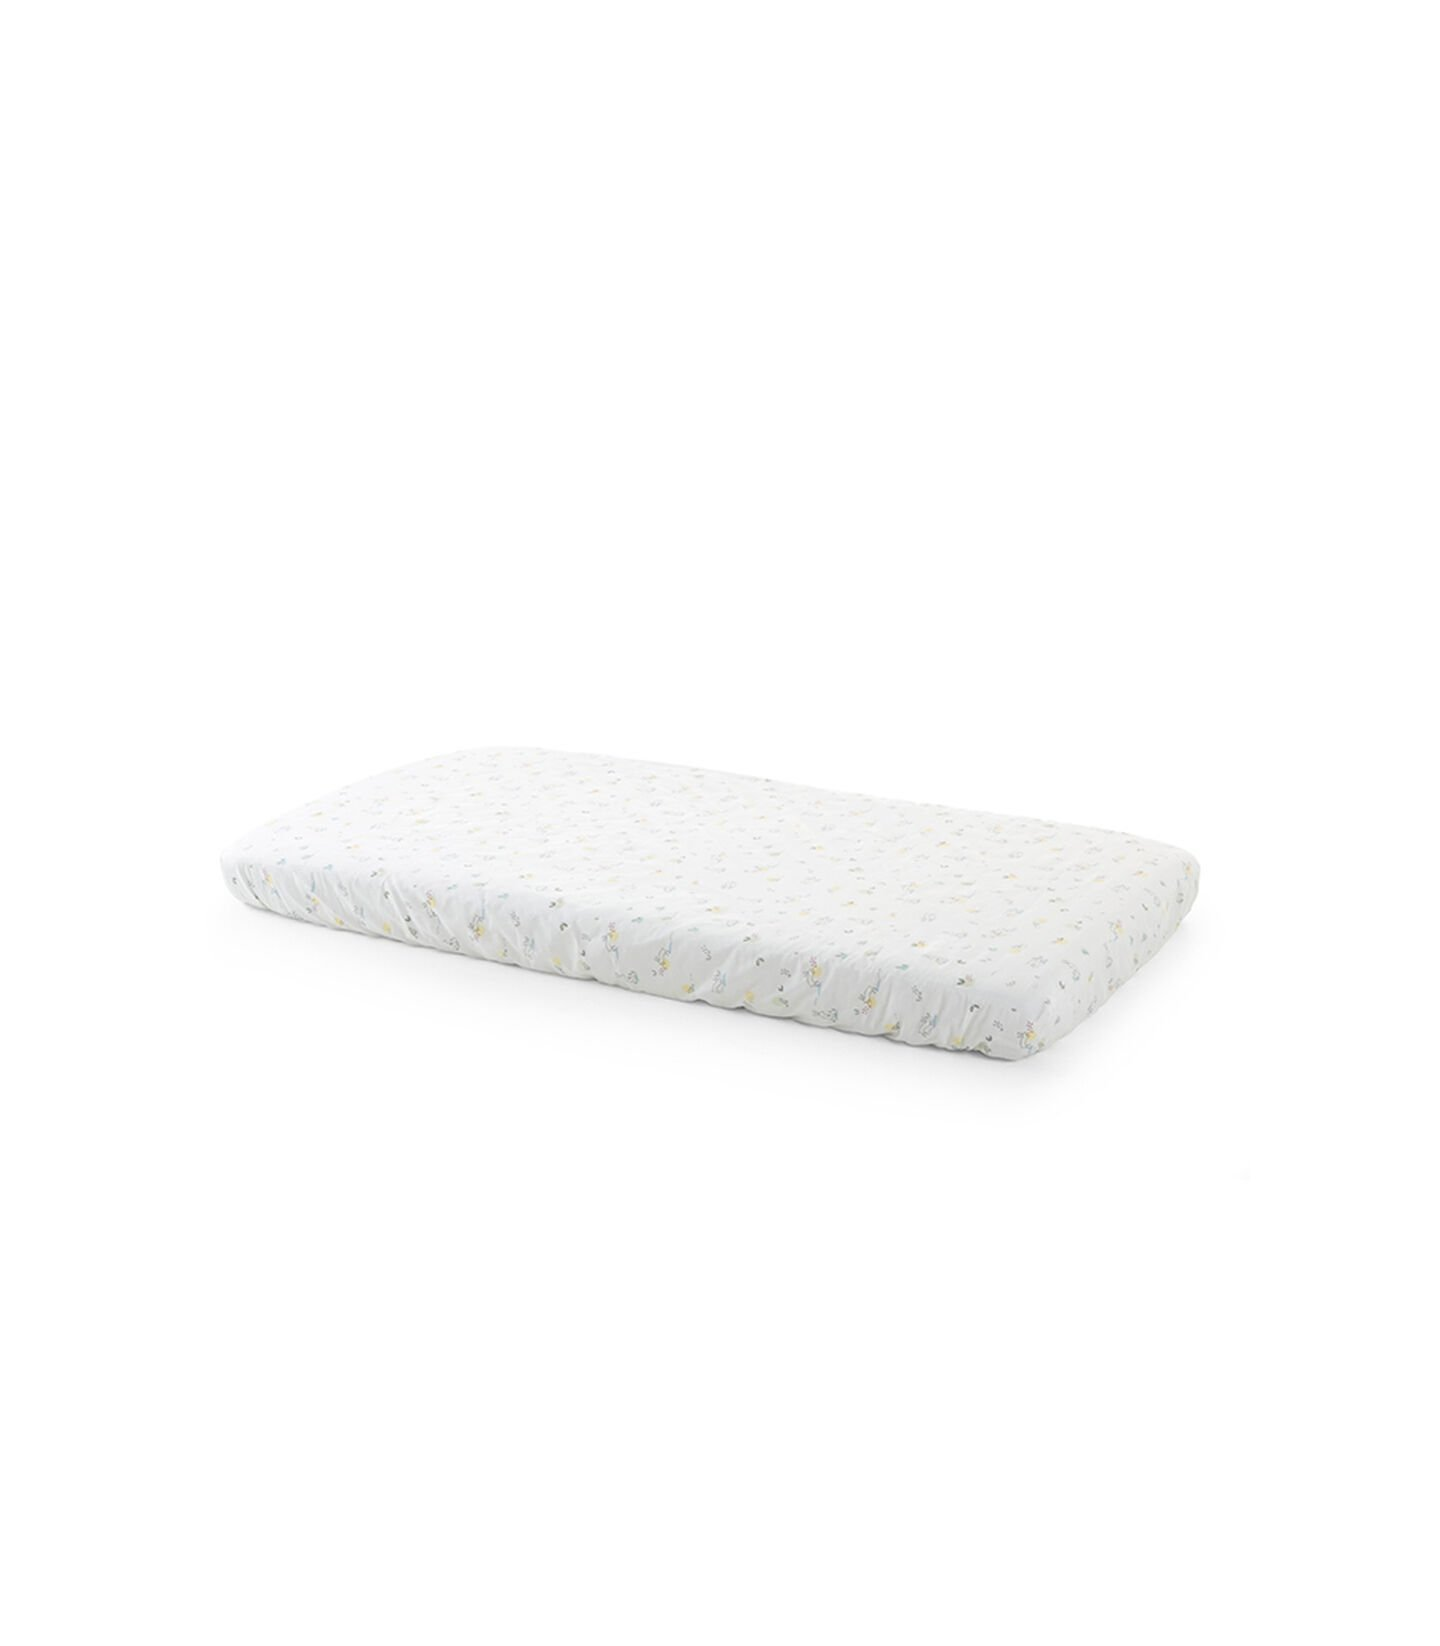 Stokke® Home™ Crib Fitted Sheet 2pc Soft Rabbit, Soft Rabbit, mainview view 1